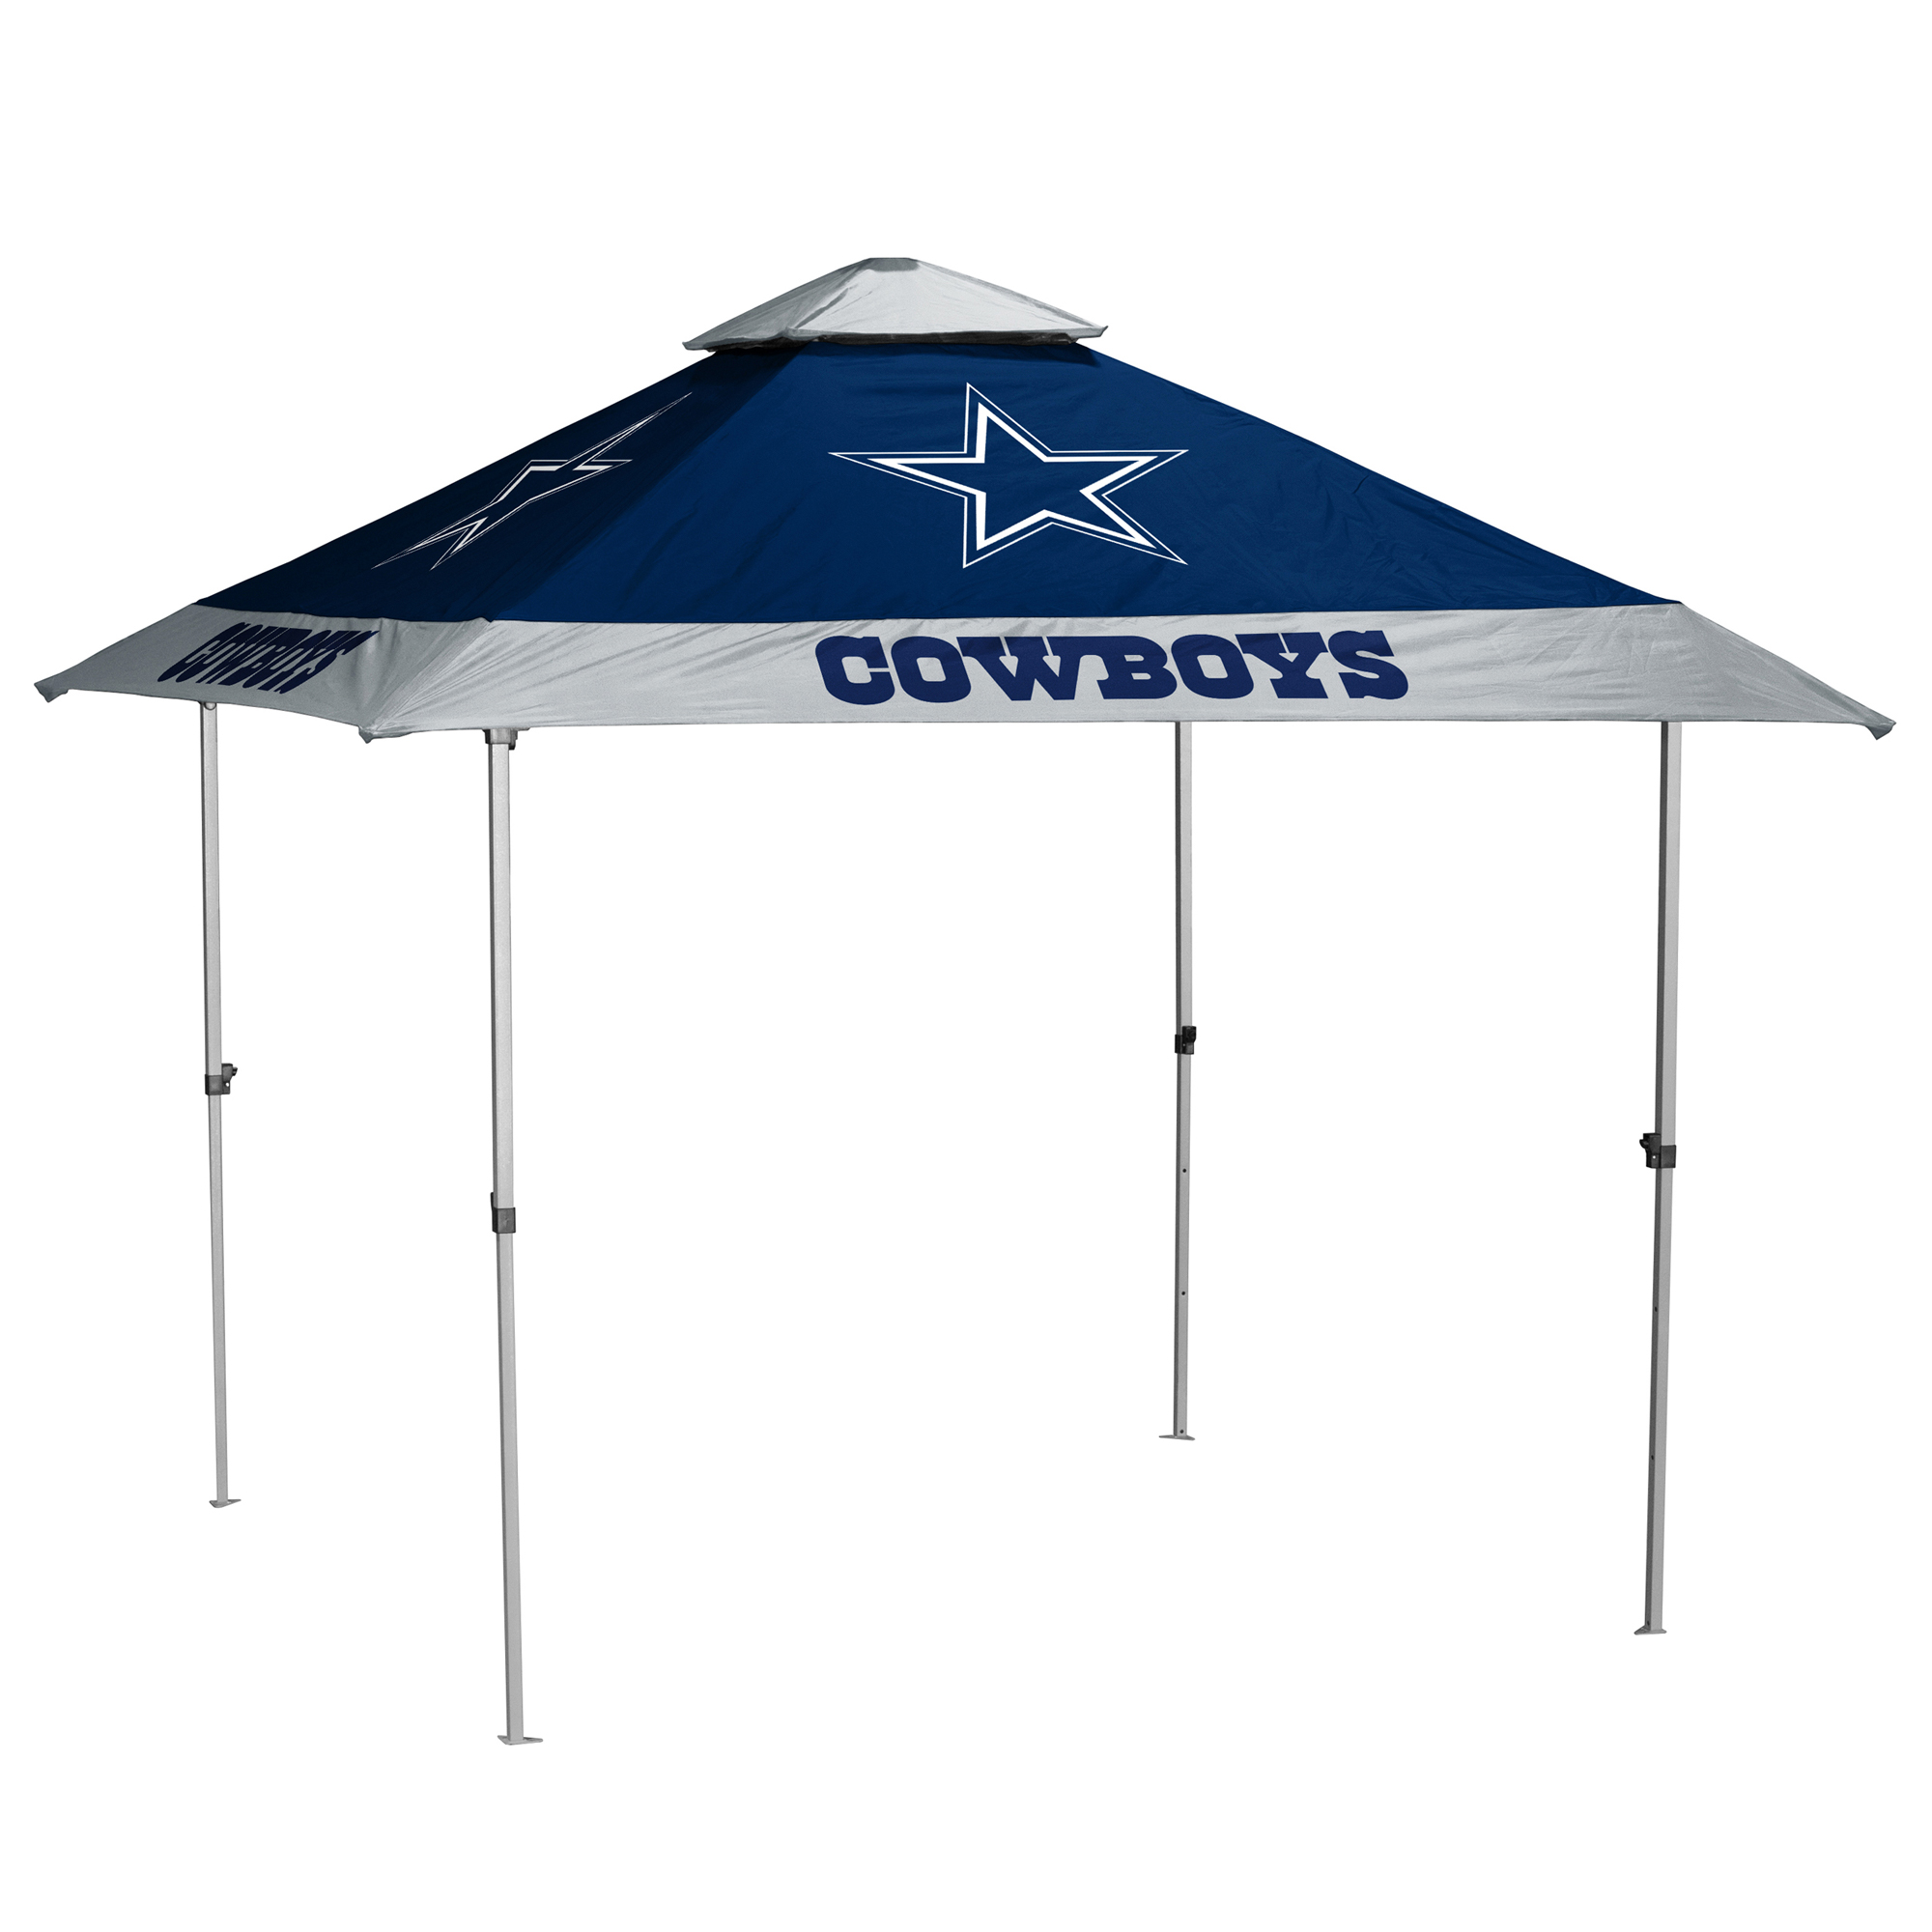 Dallas Cowboys 9' x 9' Pagoda Tailgate Canopy No Size by LOGO CHAIR